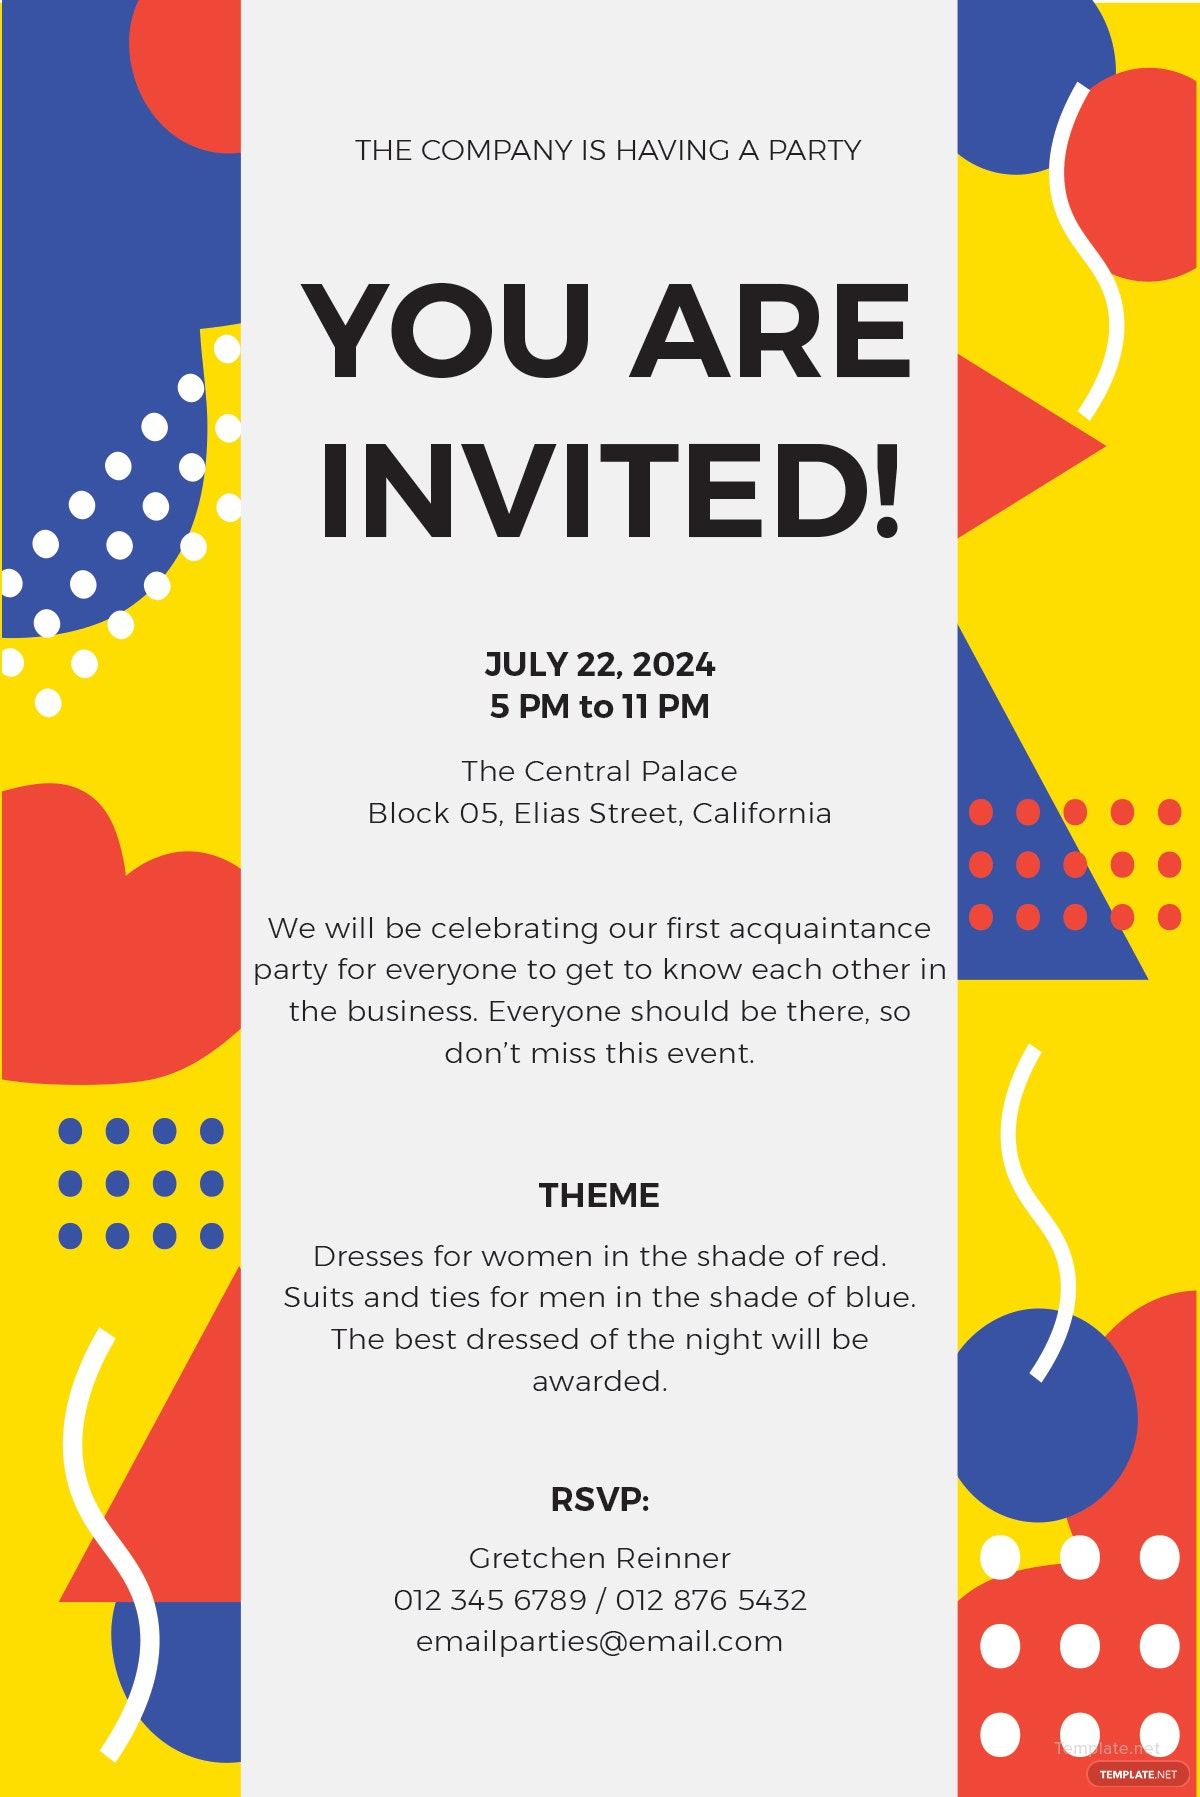 Email Party Invitation Template In Illustrator Email Party Invitation  Template Email Party Invitation Corporate Party Invitation Template  Company Party Invitation Templates